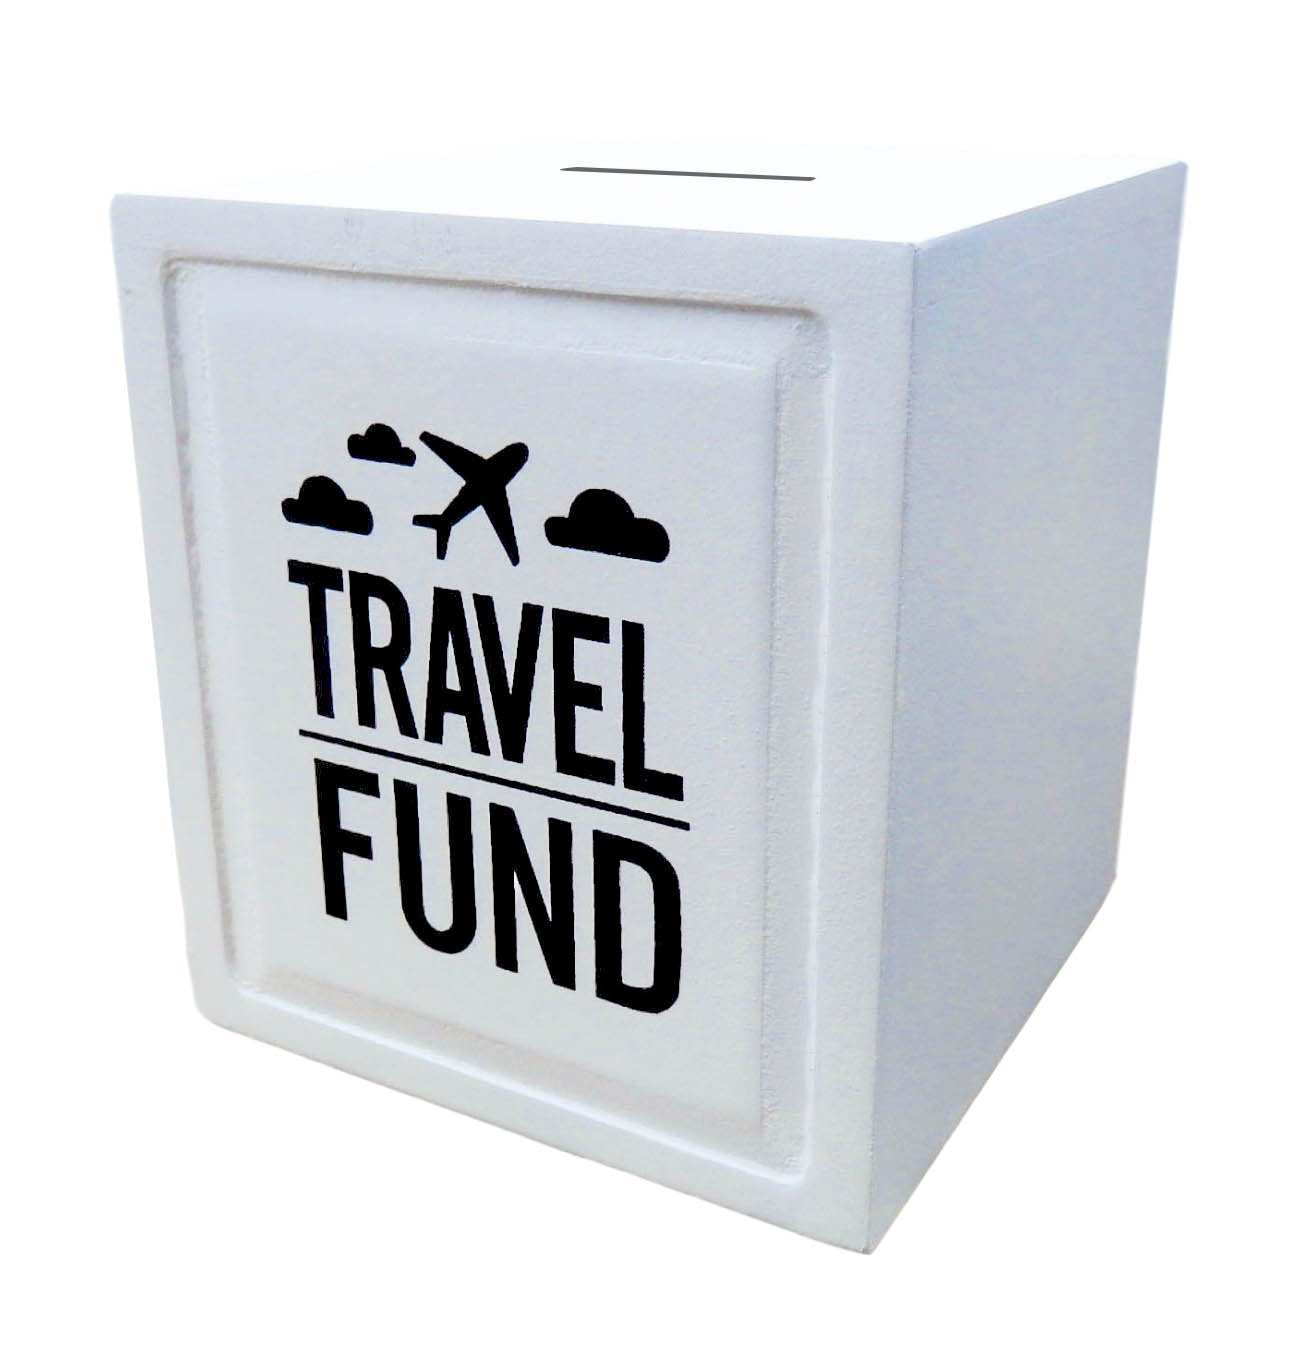 ''Travel Fund'' Piggy Bank - Wedding and Travel Gift Ideas - Money Box - House Warming and Retirement Gifts for Travelers